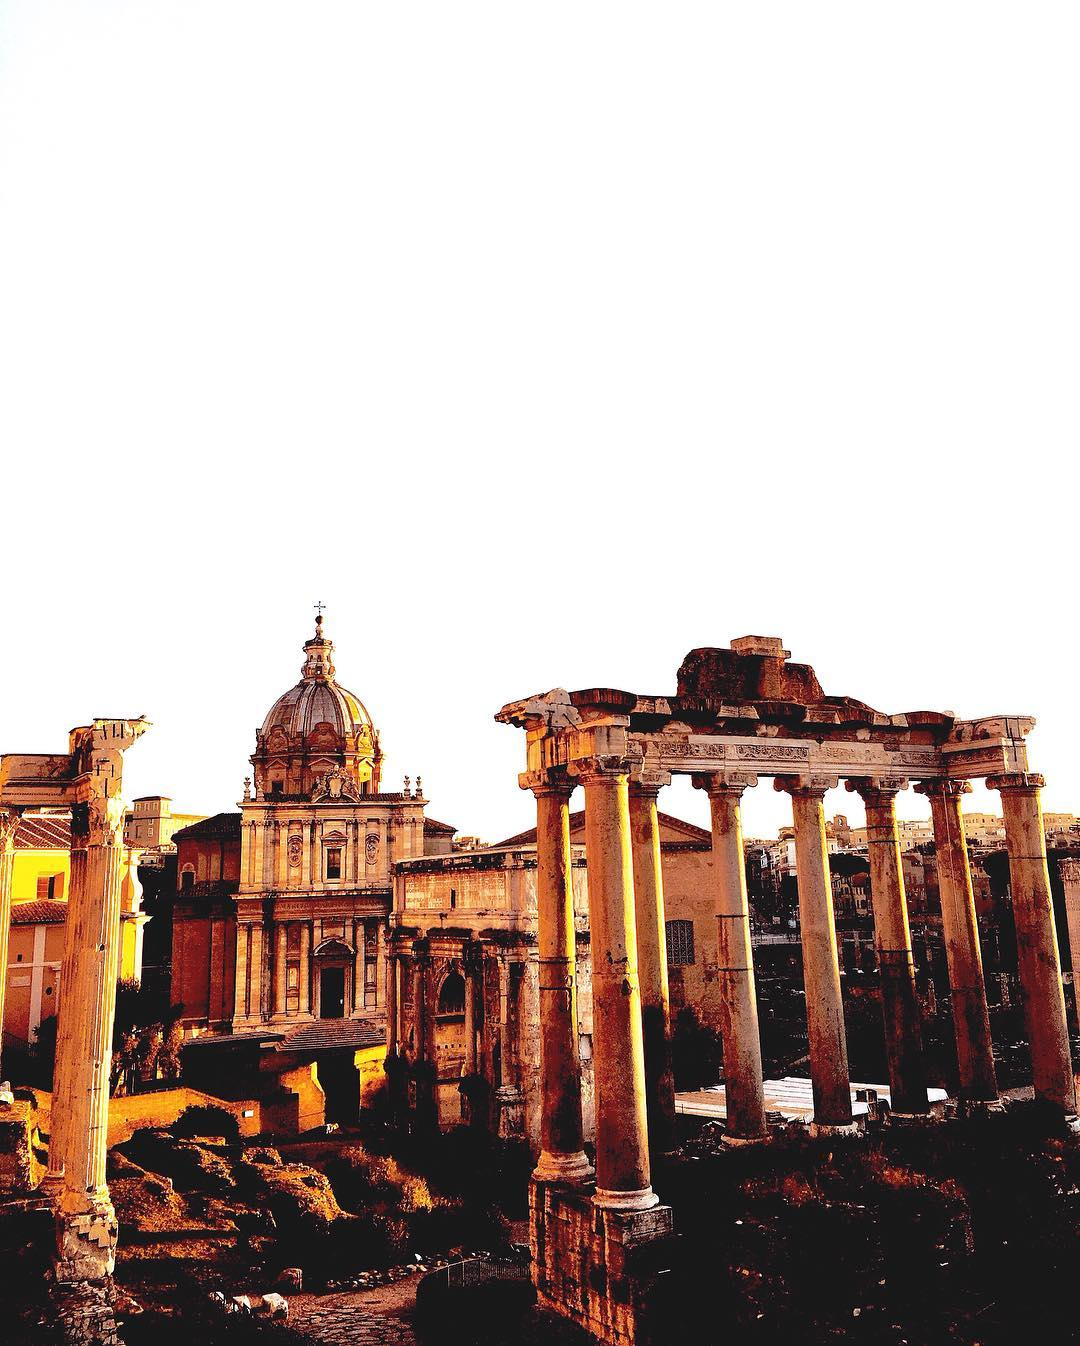 Rome, the eternal city of great beauty